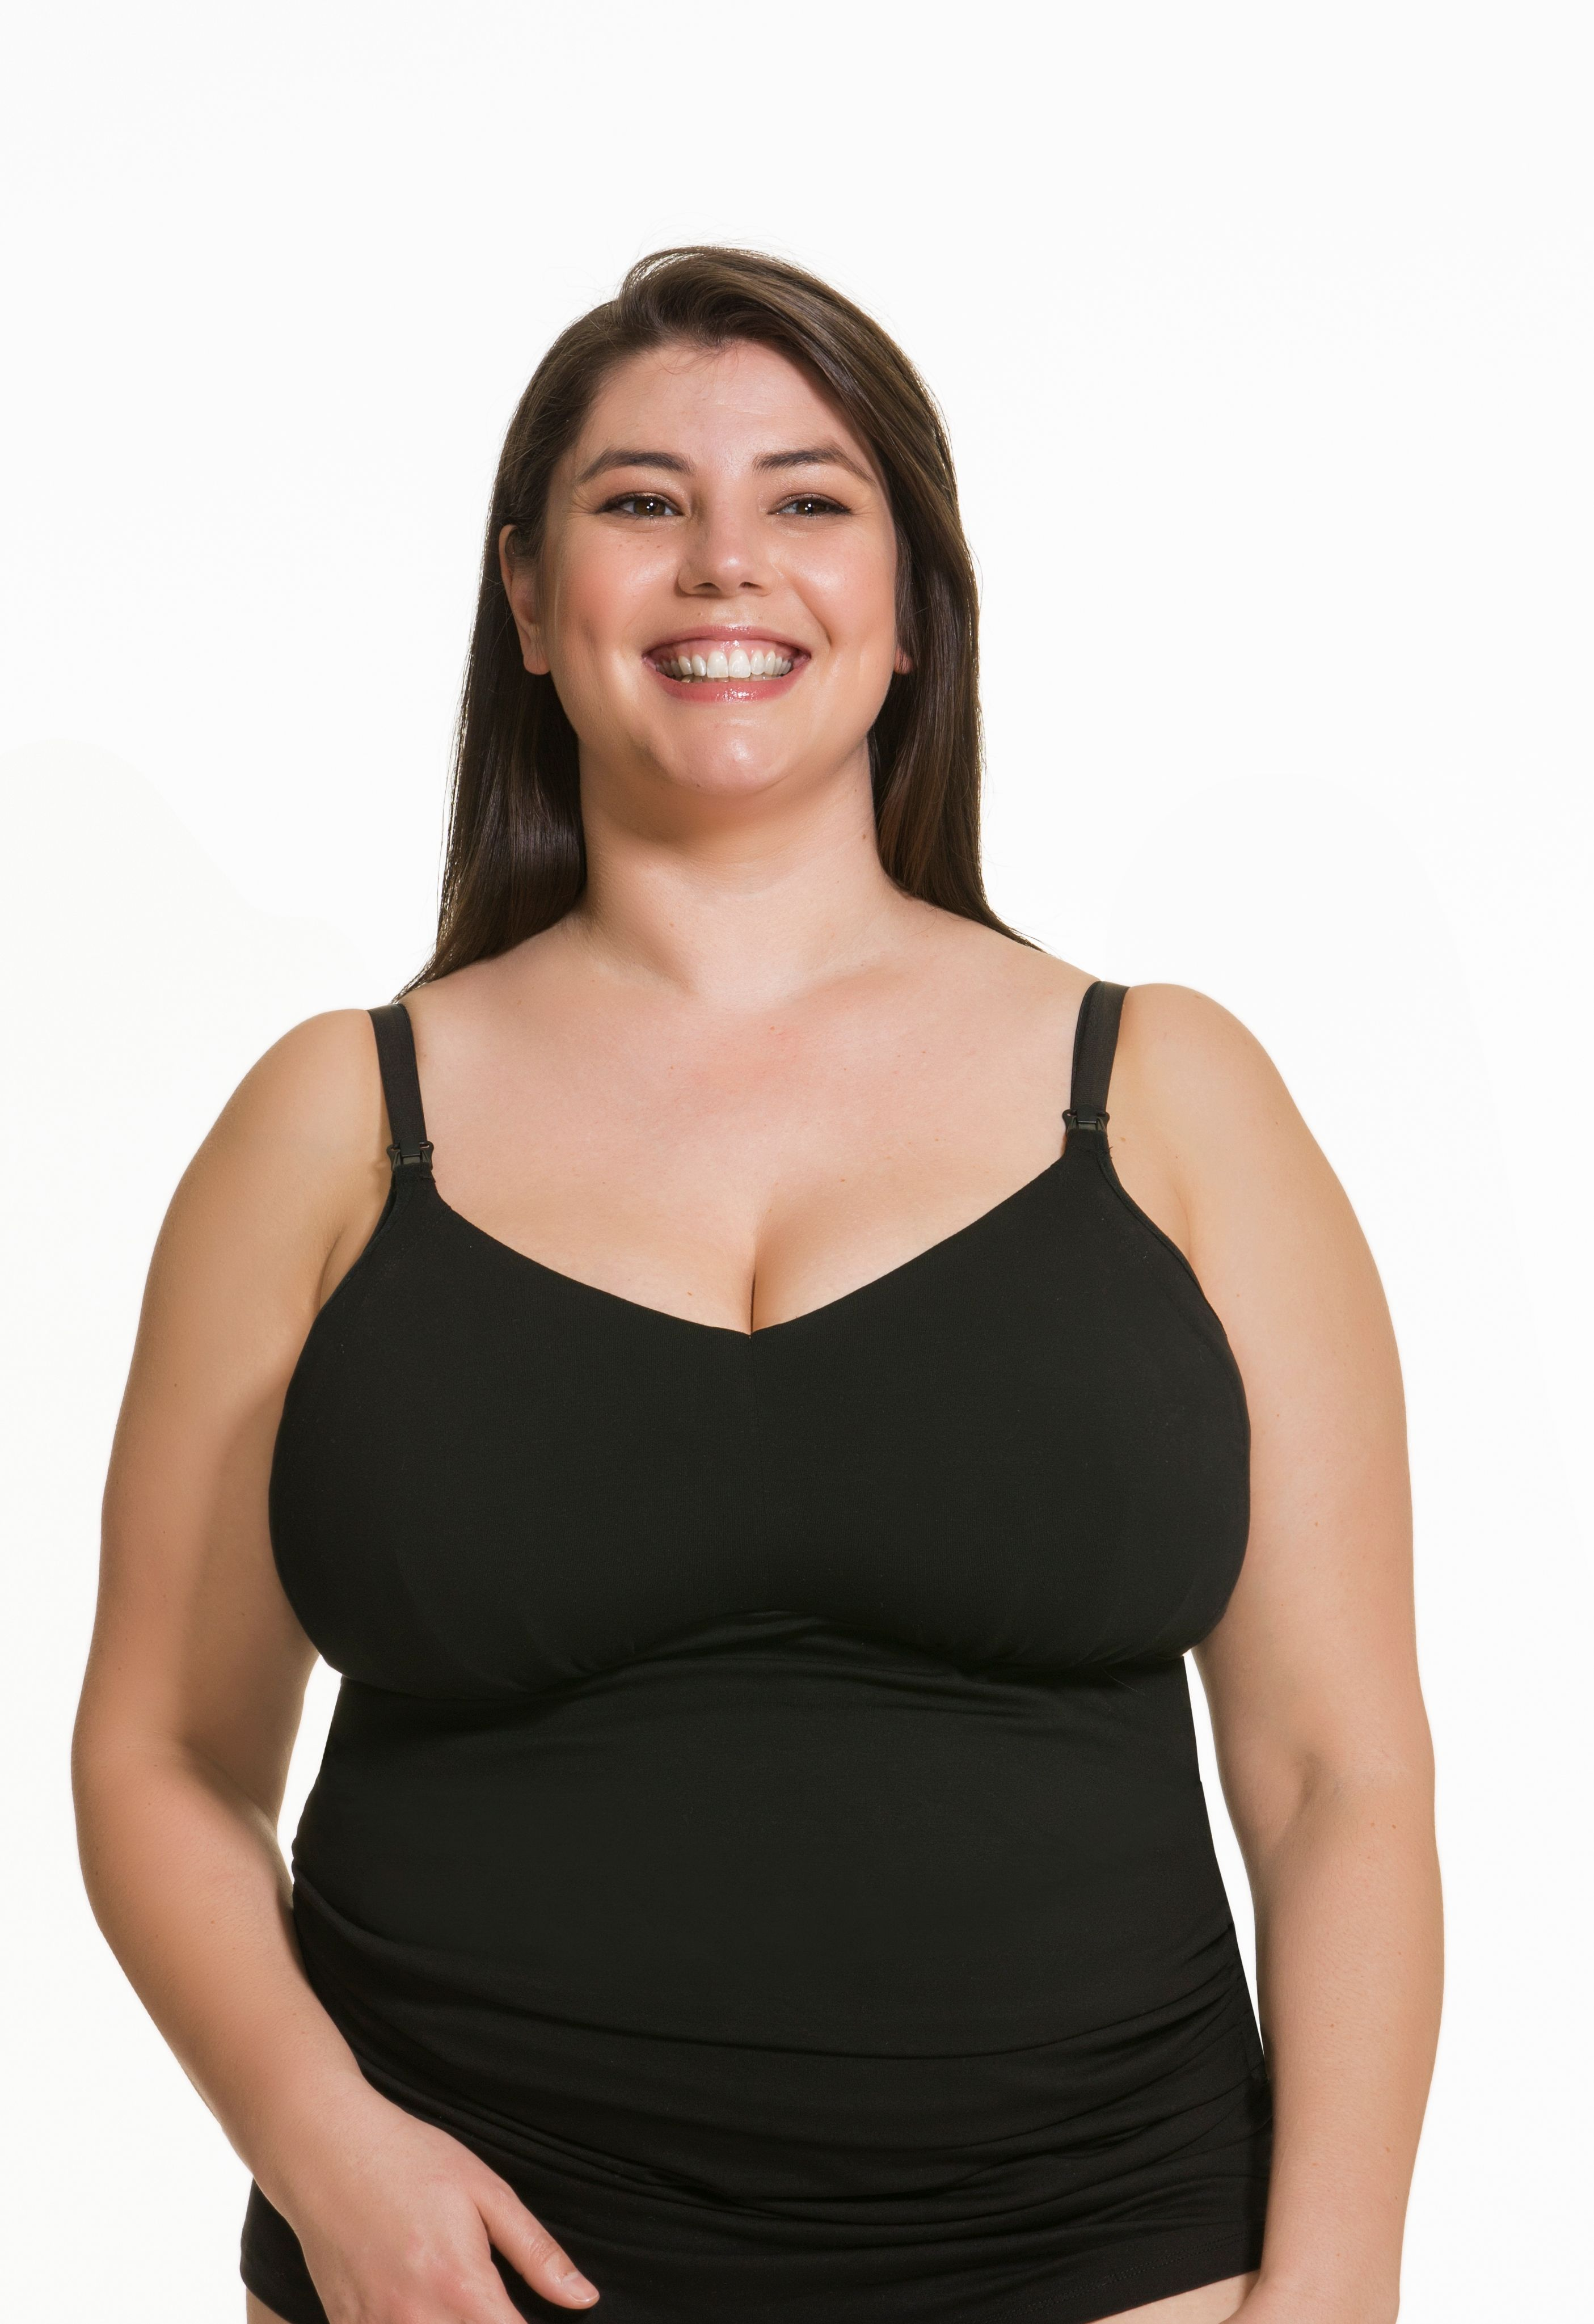 a98de740ceb52 Ultra comfy and soft, the Ice Cream Cotton Full Bust Nursing Tank is  especially made